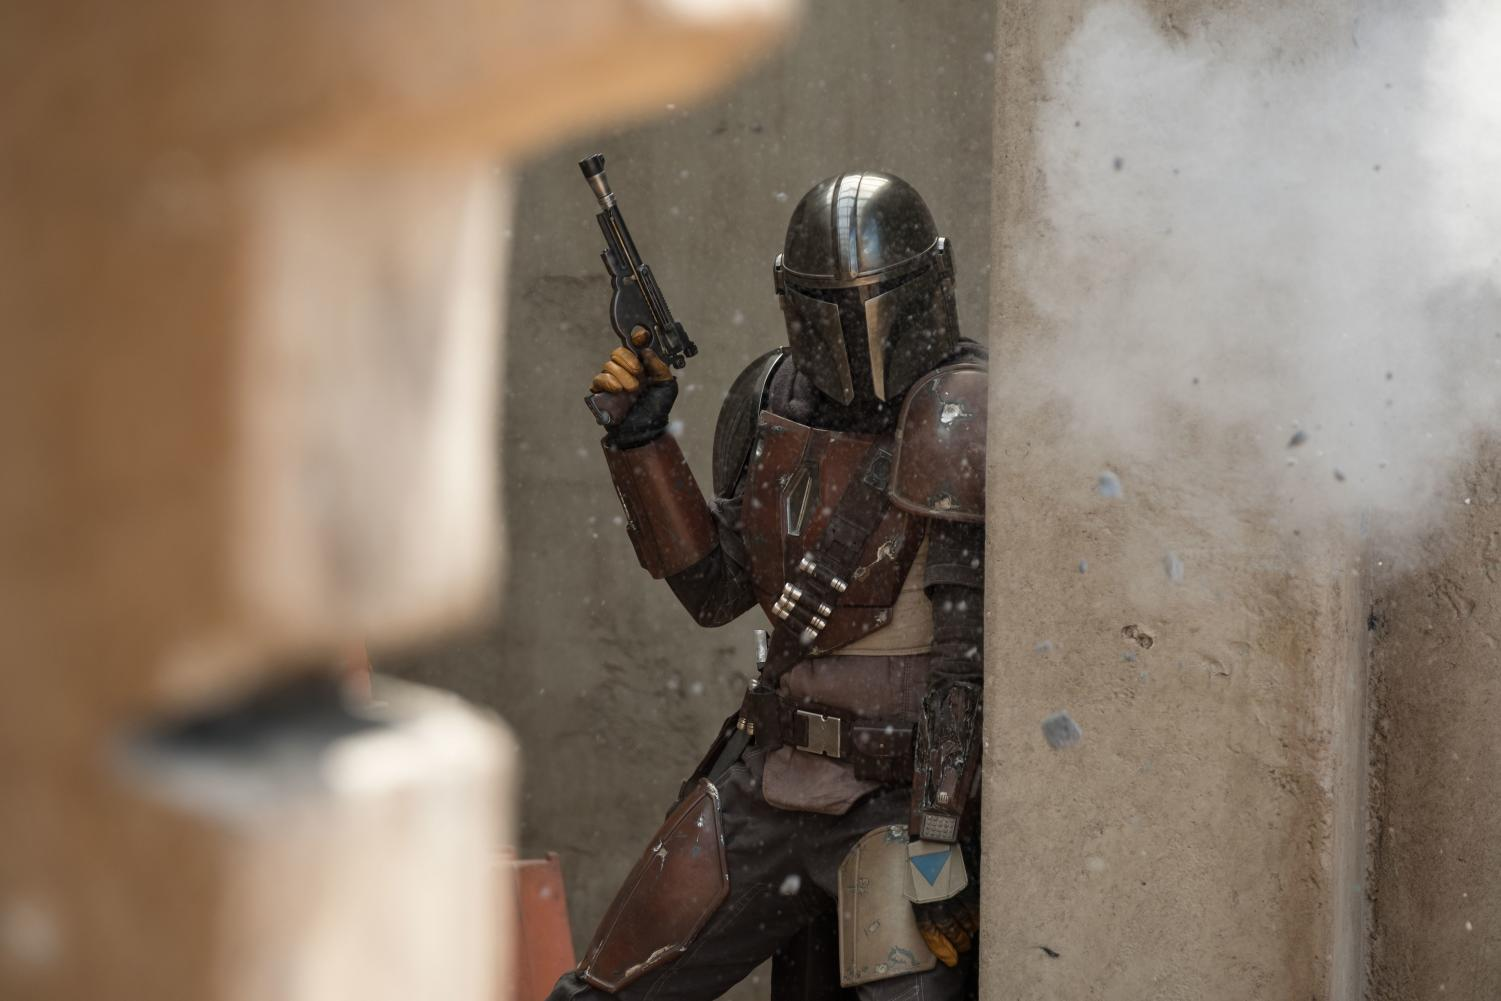 Pedro Pascal's title character takes cover during a gunfight in the first episode of